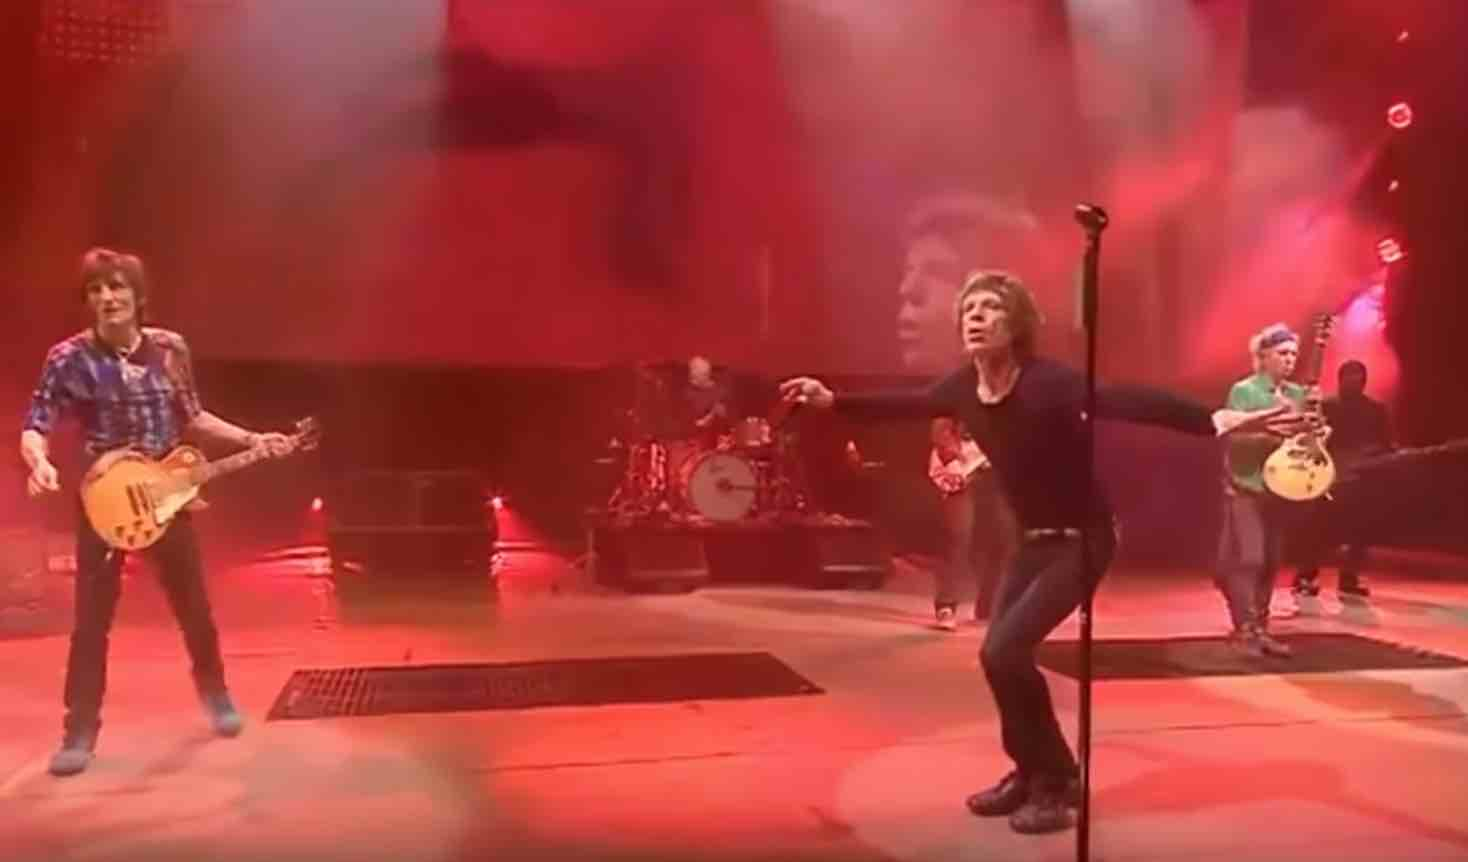 The Rolling Stones Member Brutally Falls Down